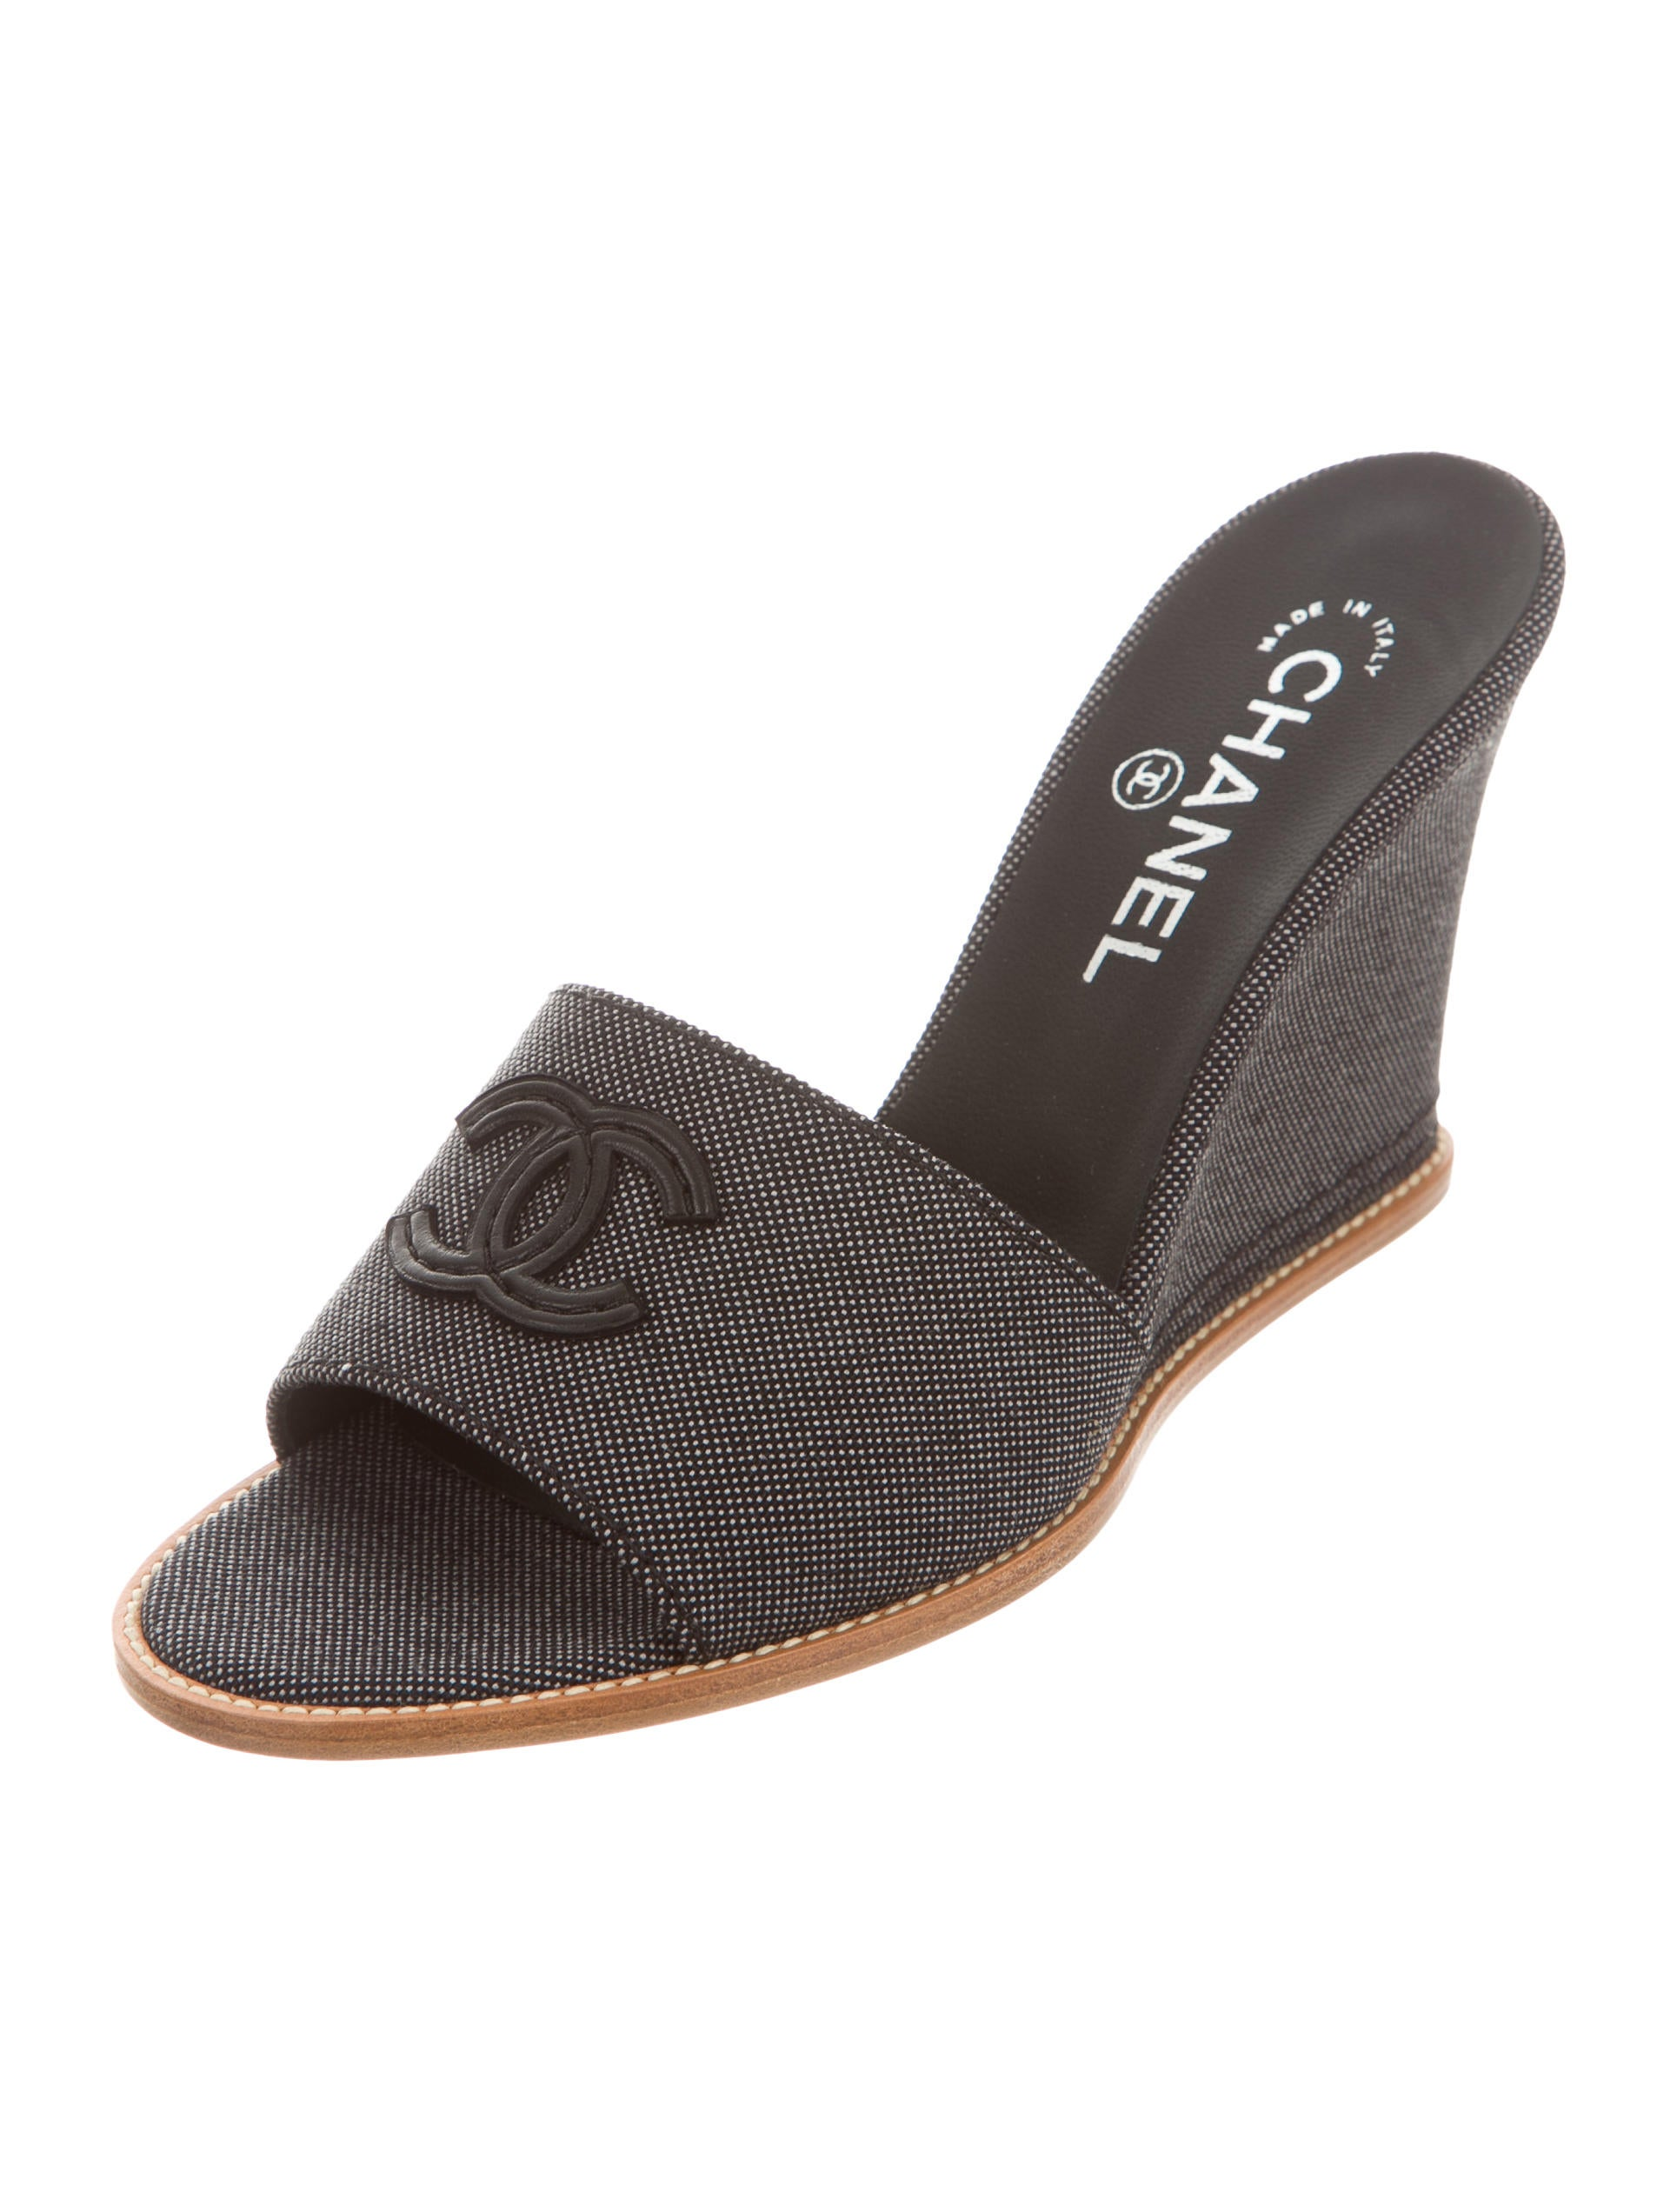 chanel canvas cc wedges w tags shoes cha158275 the